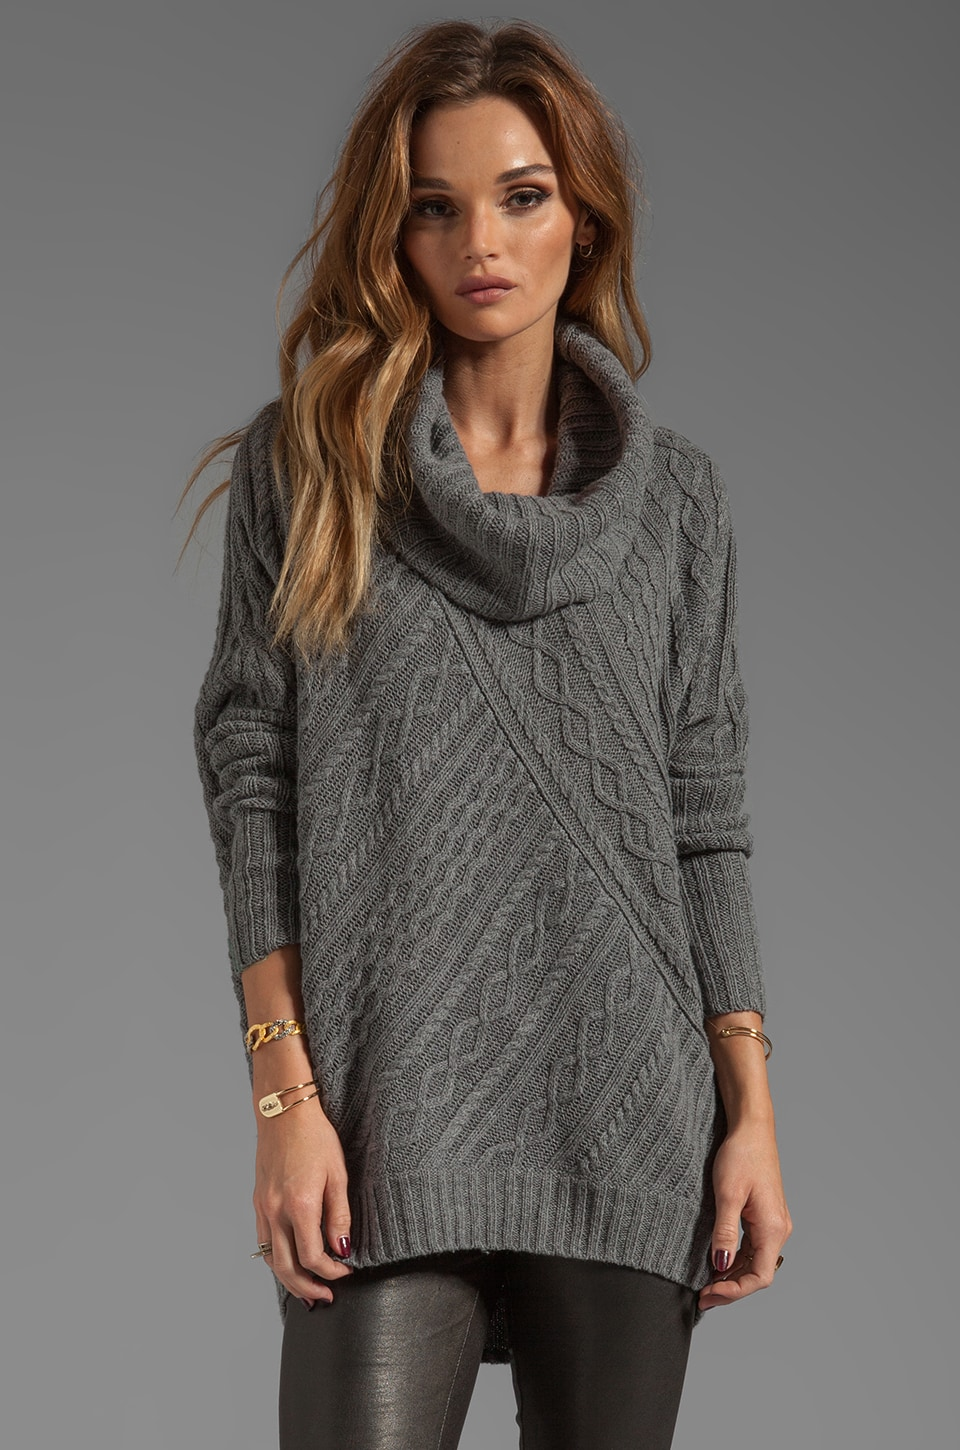 BCBGMAXAZRIA Linden Sweater in Heather Grey